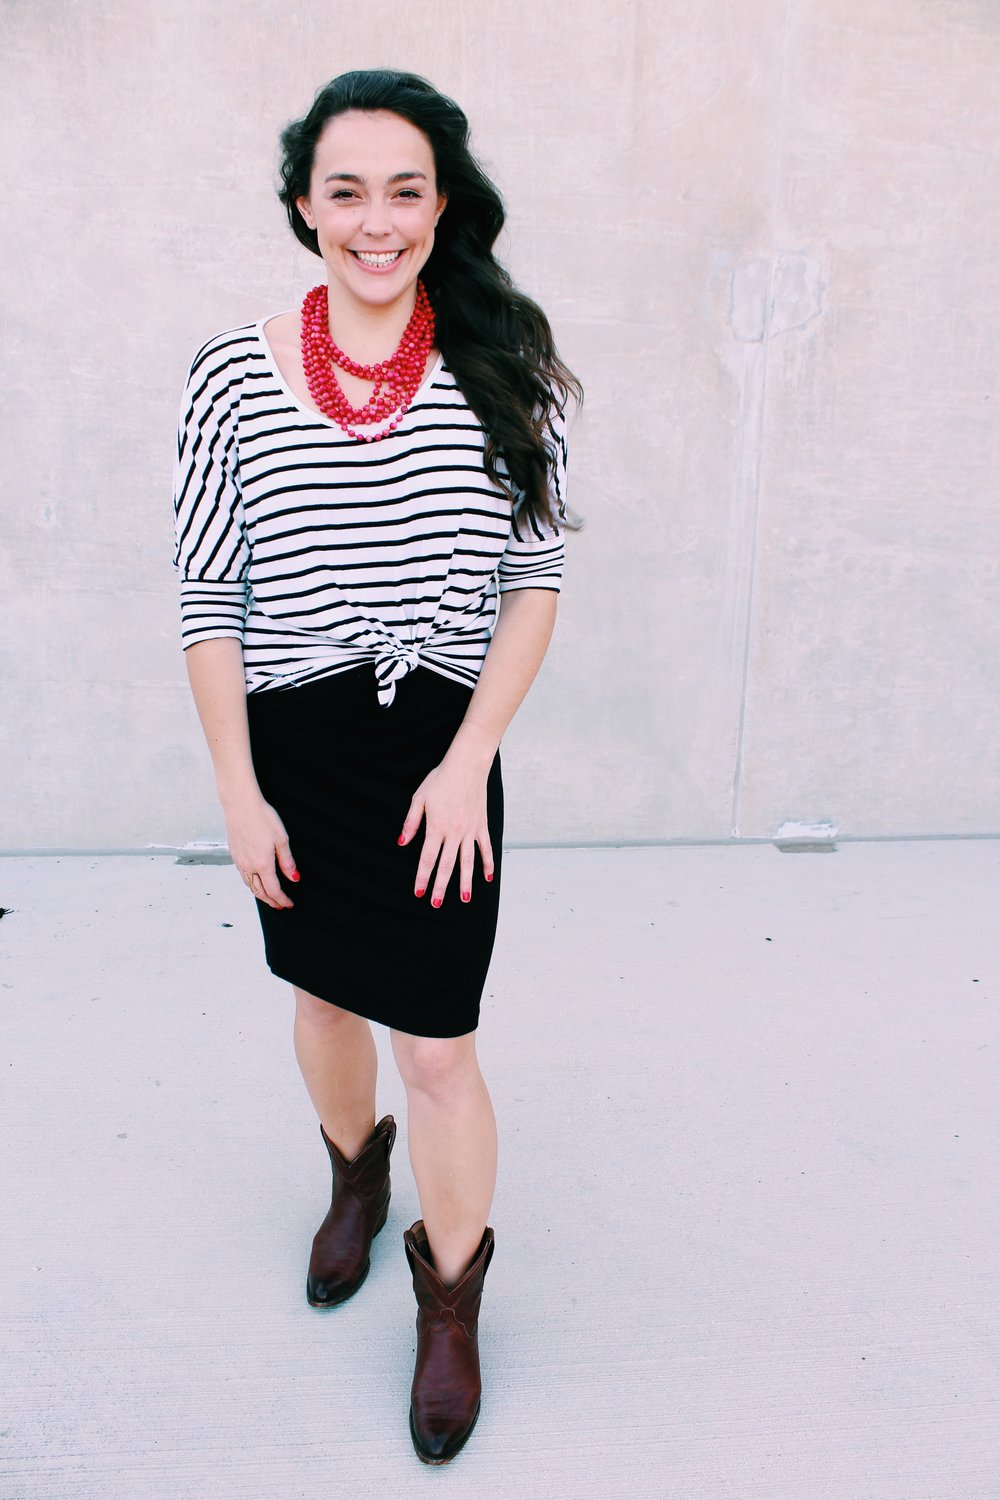 Greer Image Consulting - Blog - The Greer Guide to Style - Simple Styling Tricks - Styling Tricks - Black Boots - Red Necklace - Statement Fashion - Statement Necklace